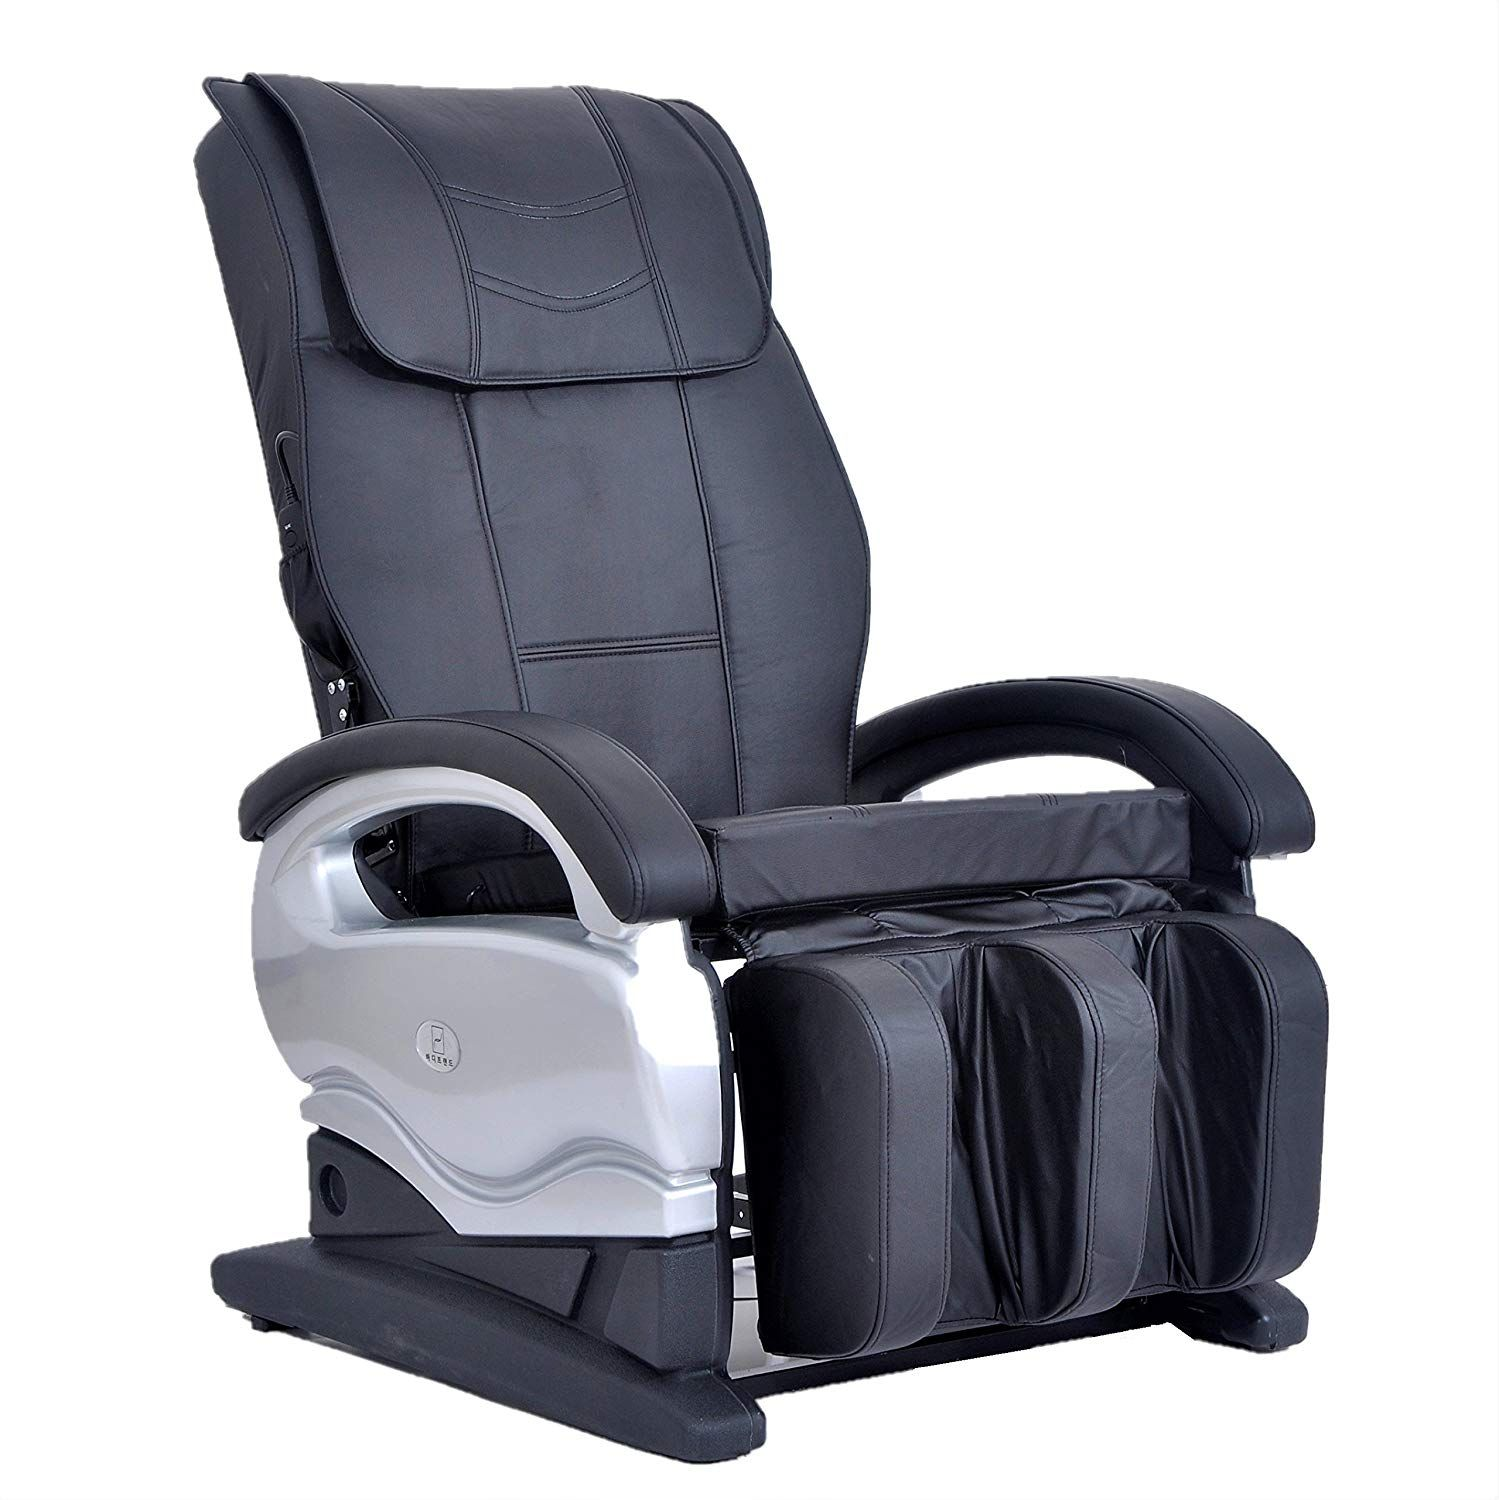 Electric Power Body Shiatsu Sofa Recliner Vibrating Massage Chair 8881 Black Item Description This Massage Chair Offer You A Peaceful Time Of Relaxation Any